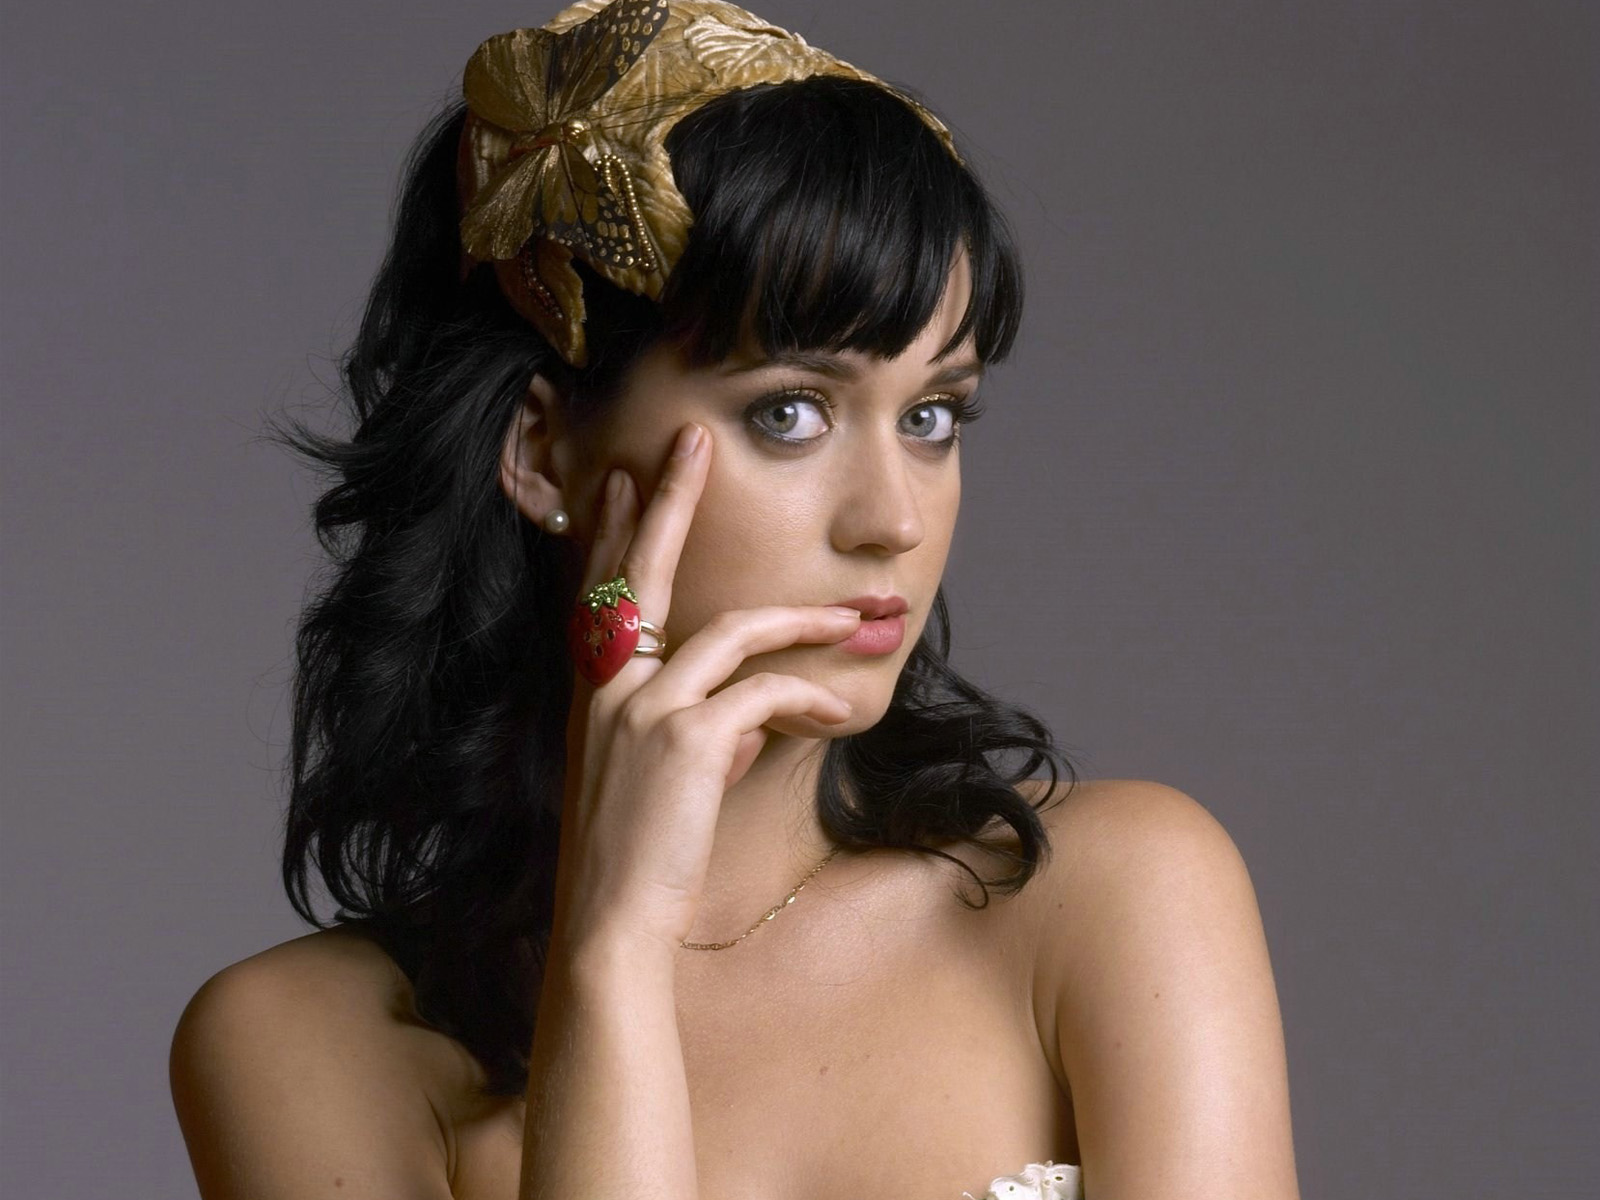 lamenik: katy perry hd wallpaper